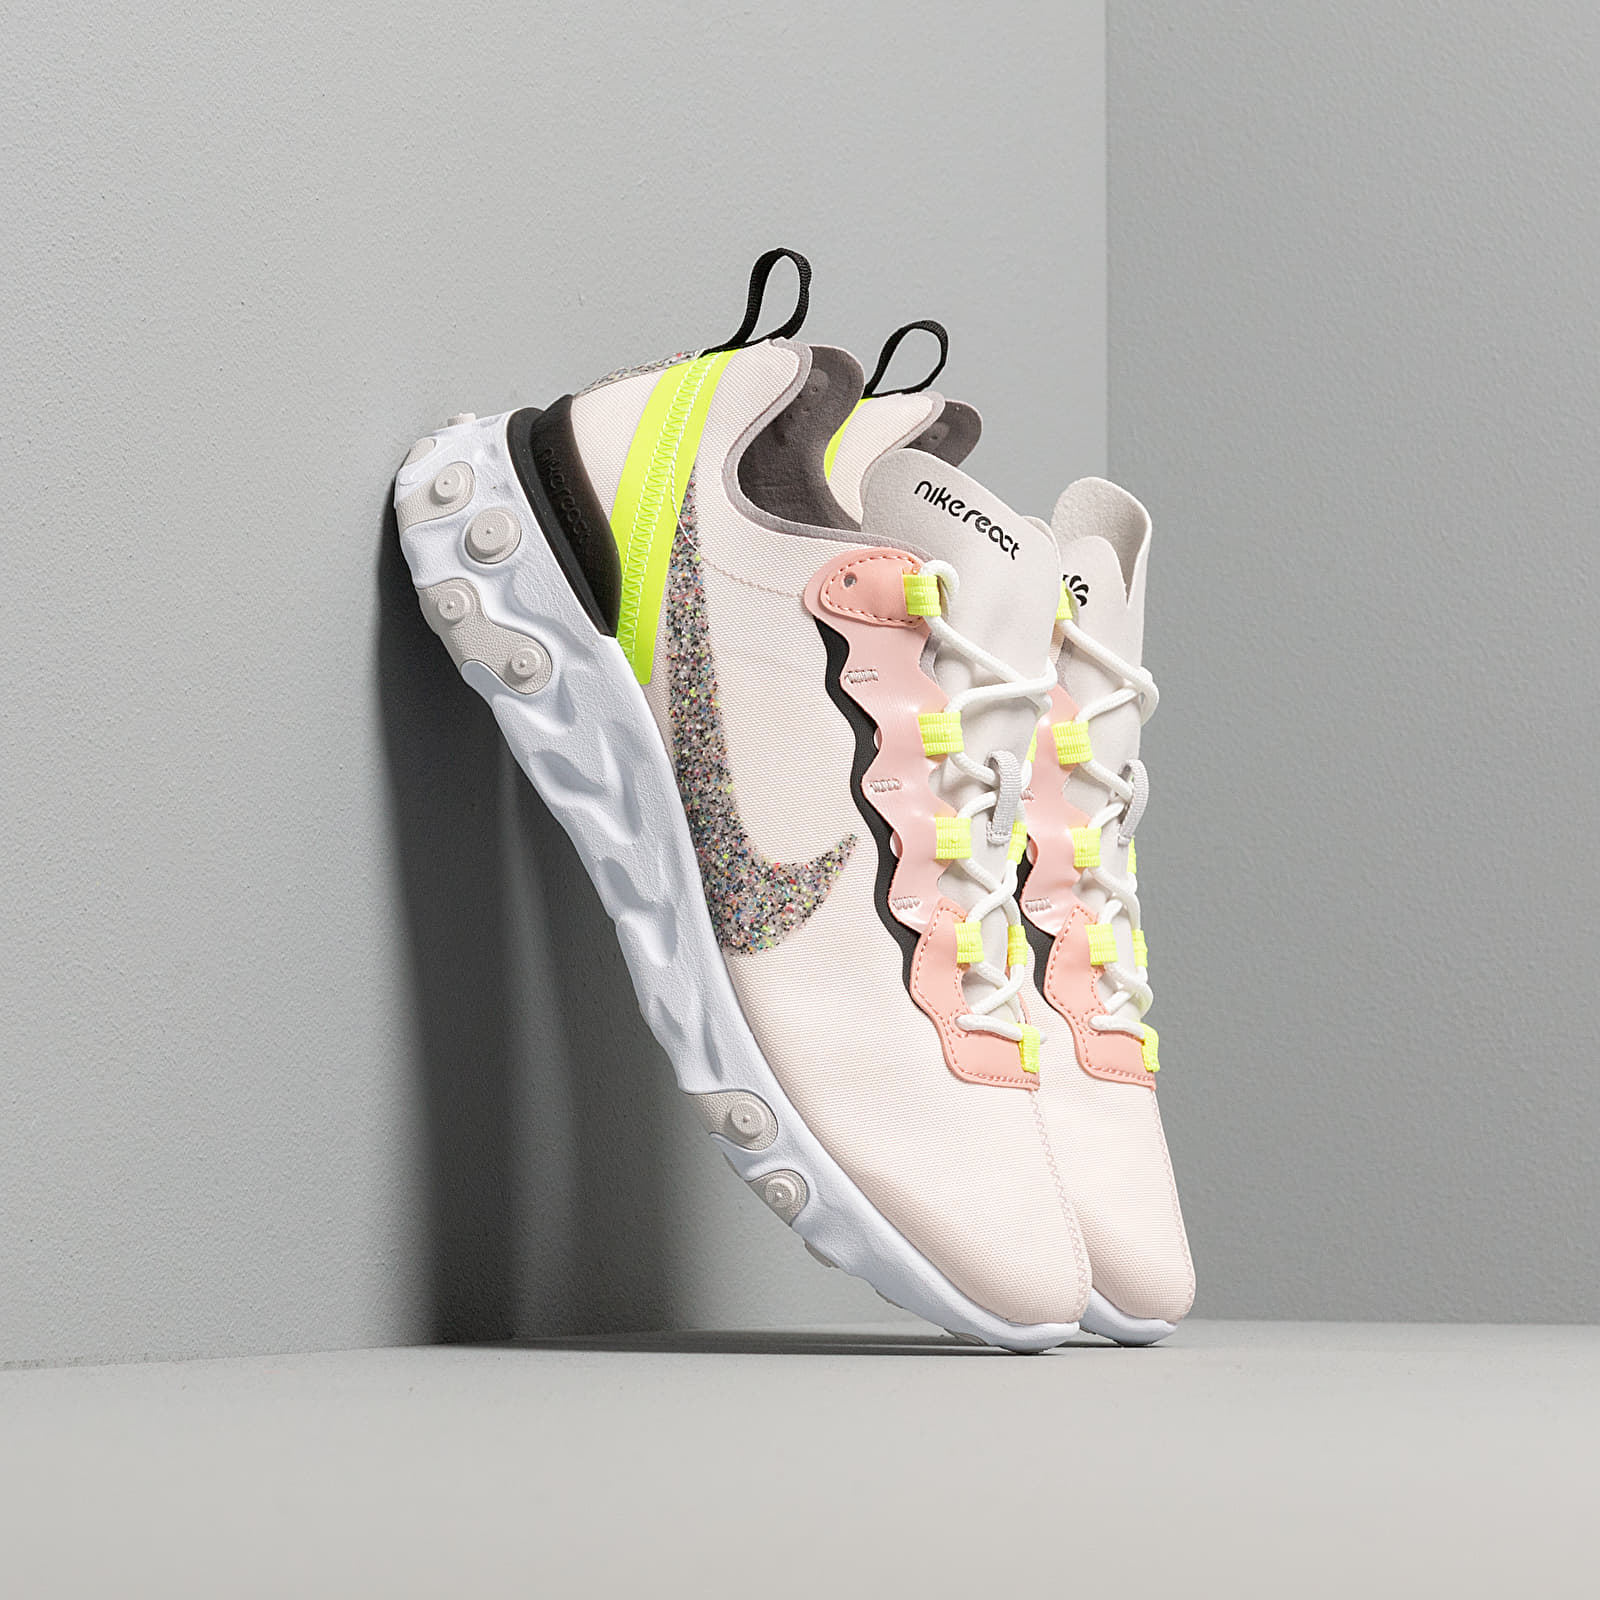 Women's shoes Nike W React Element 55 Premium Light Soft Pink/ Atmosphere Grey-Black